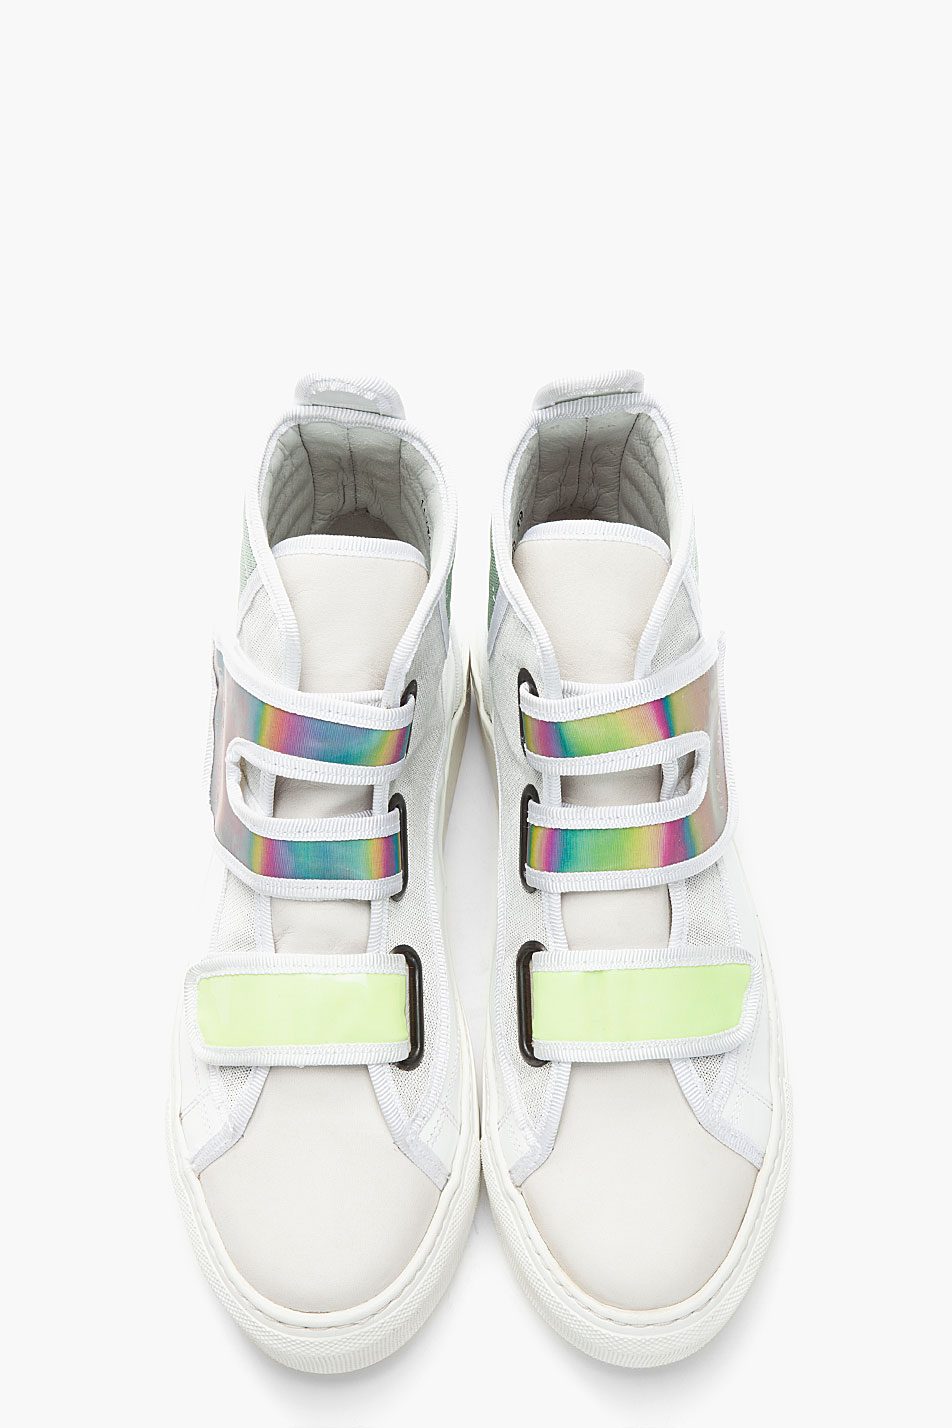 9c4abc301bfa Lyst - Raf Simons White Green Holographic Velcro High Top Sneakers ...